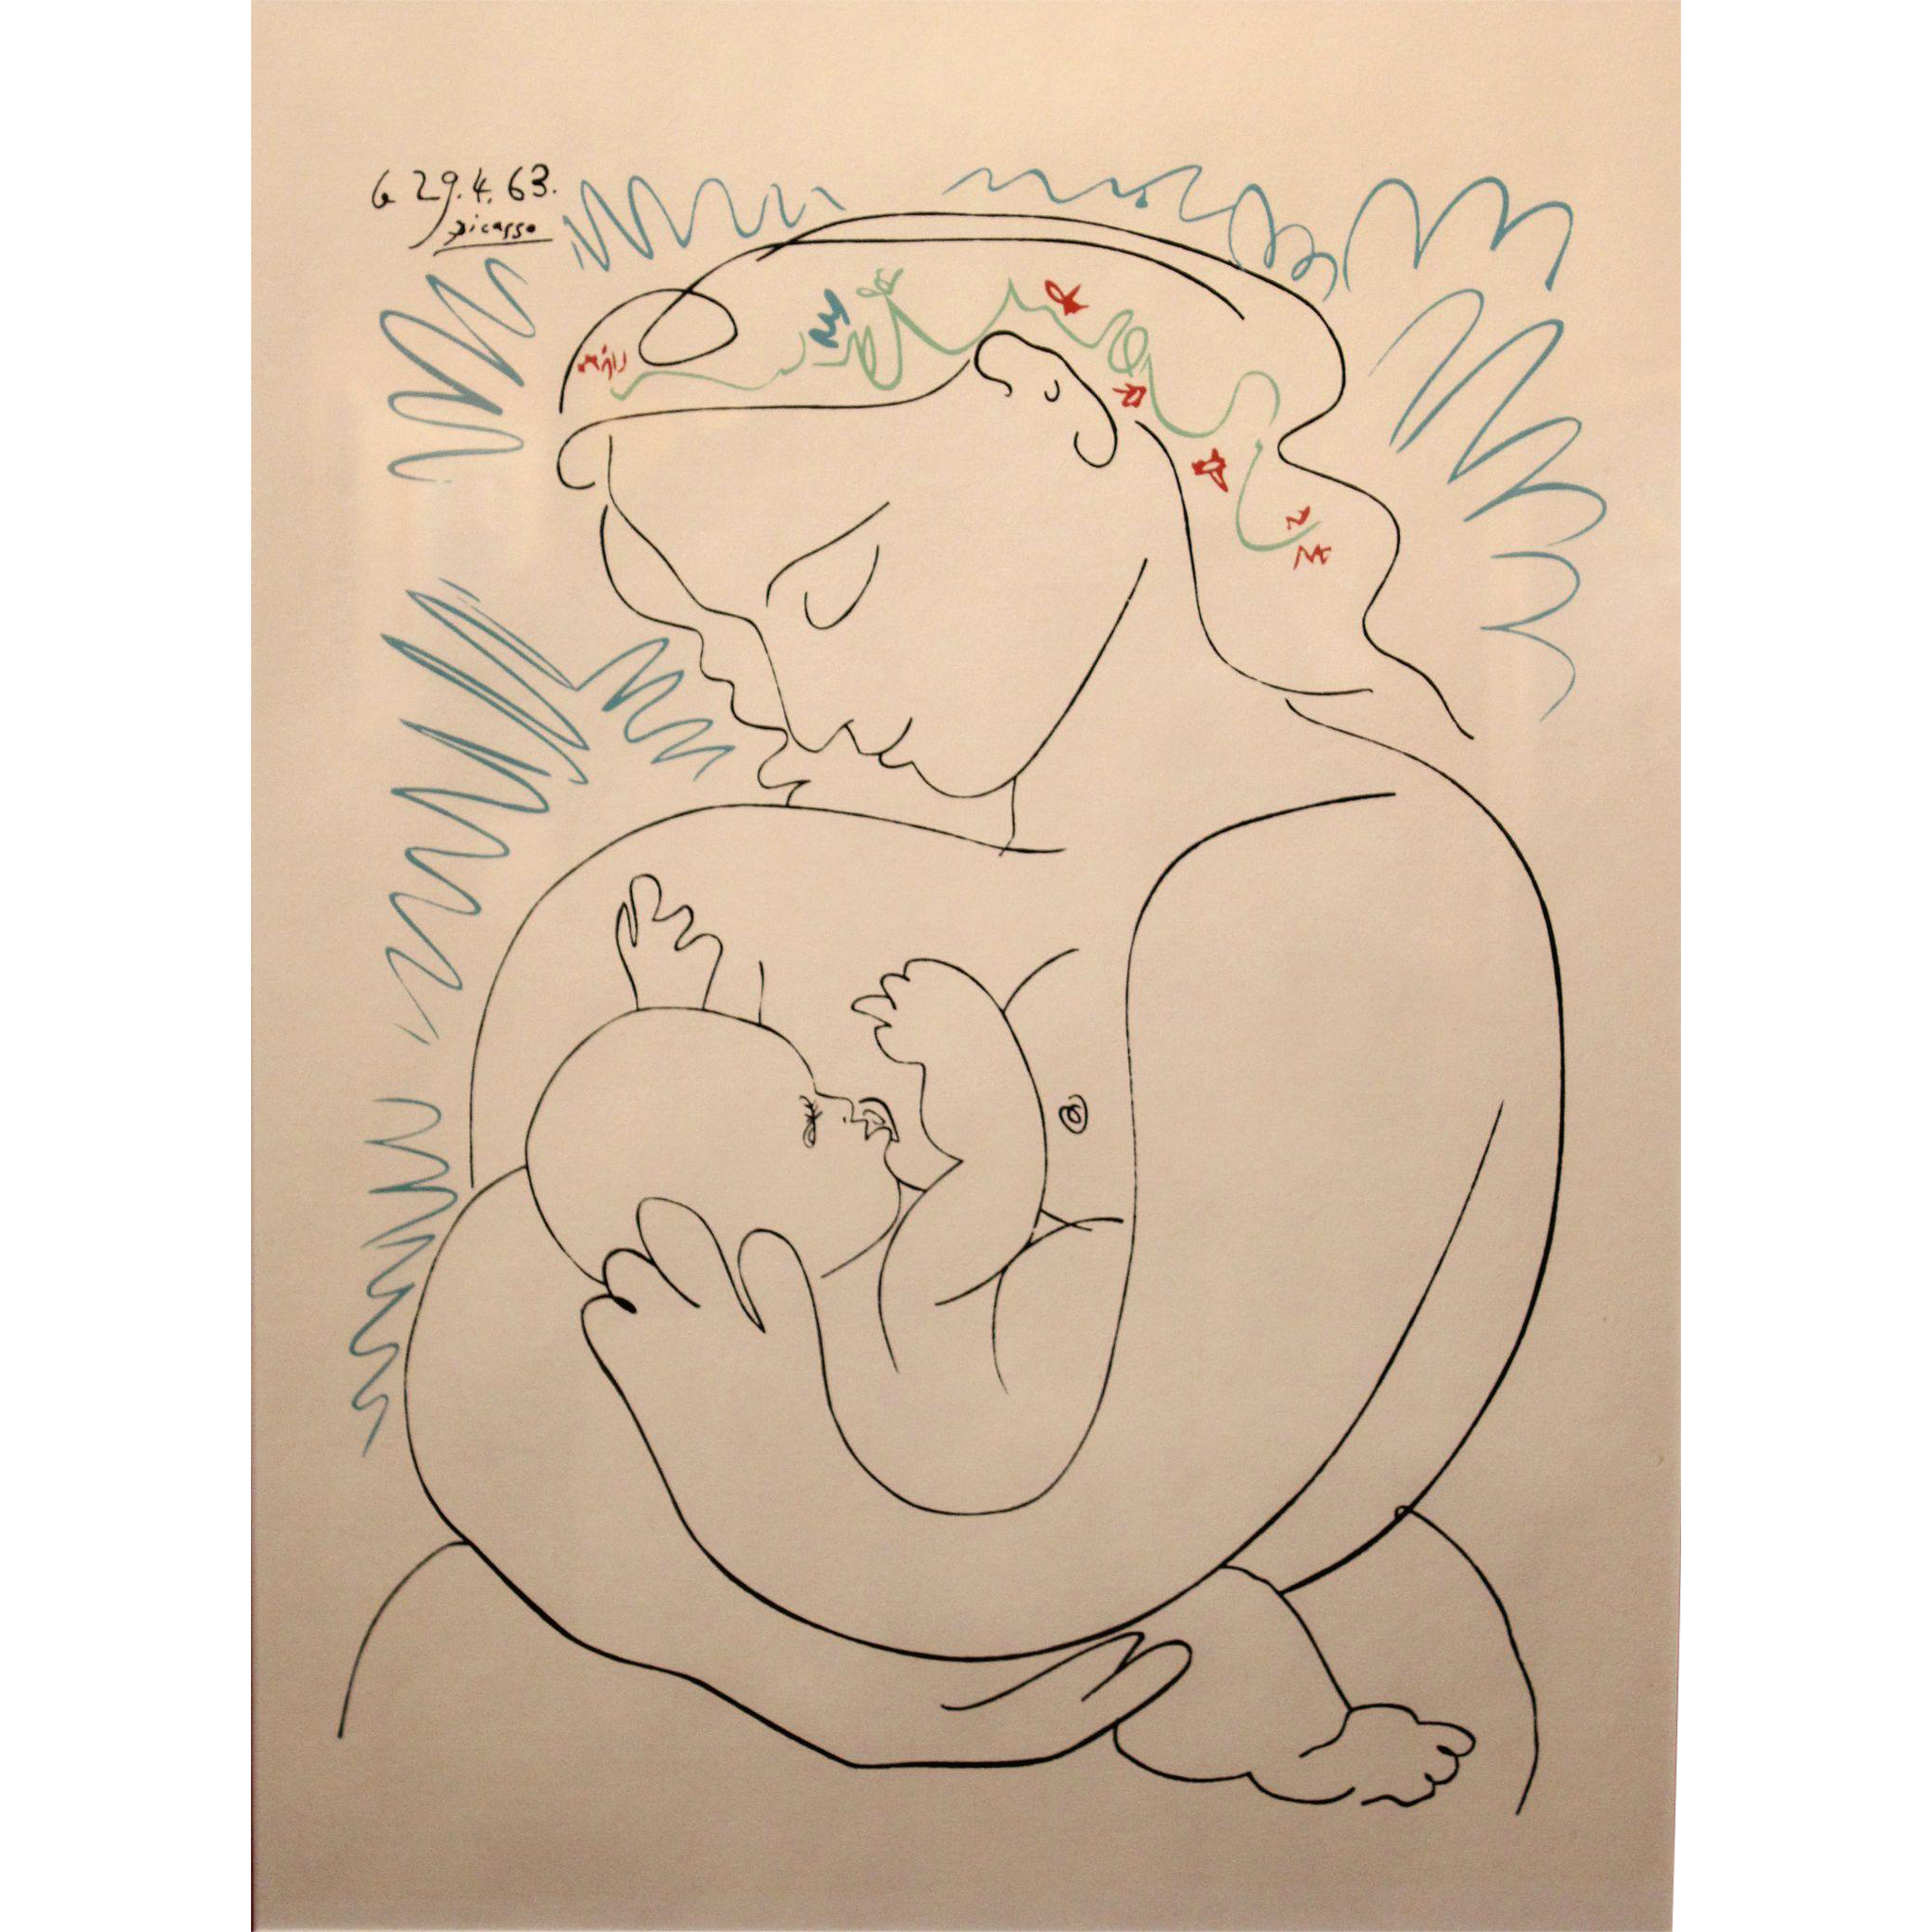 Pablo Ruiz Picasso 1963 Print Mother and Child / Le Grande Maternite